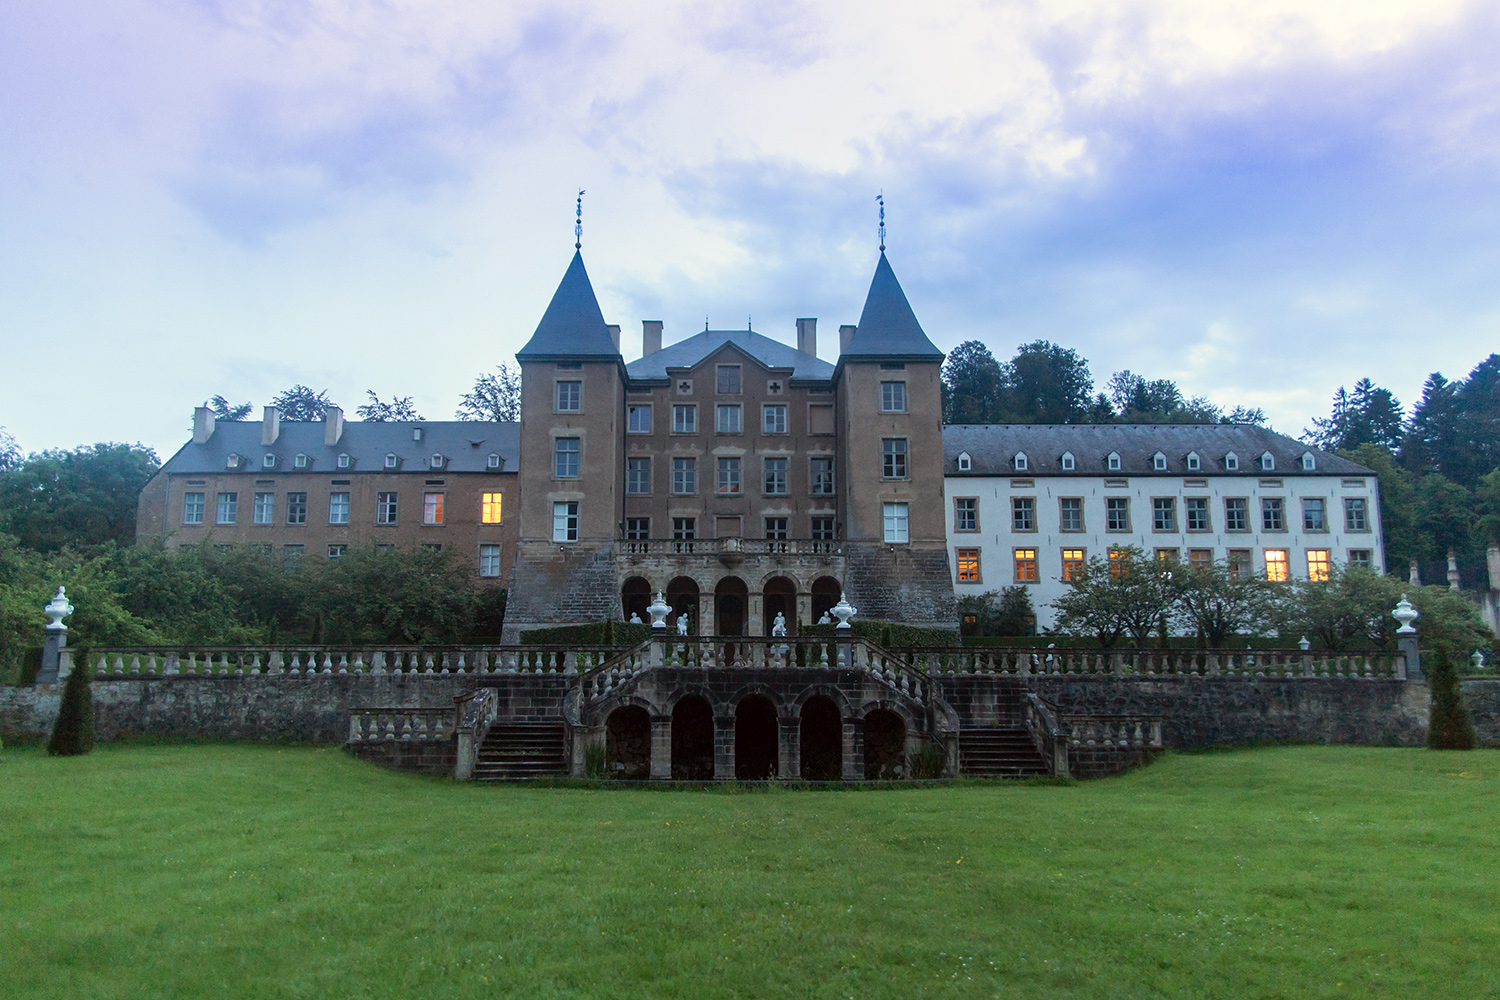 New Ansembourg Castle by Luxembourg. Photo taken by Vio Dudau on June 7, 2016.